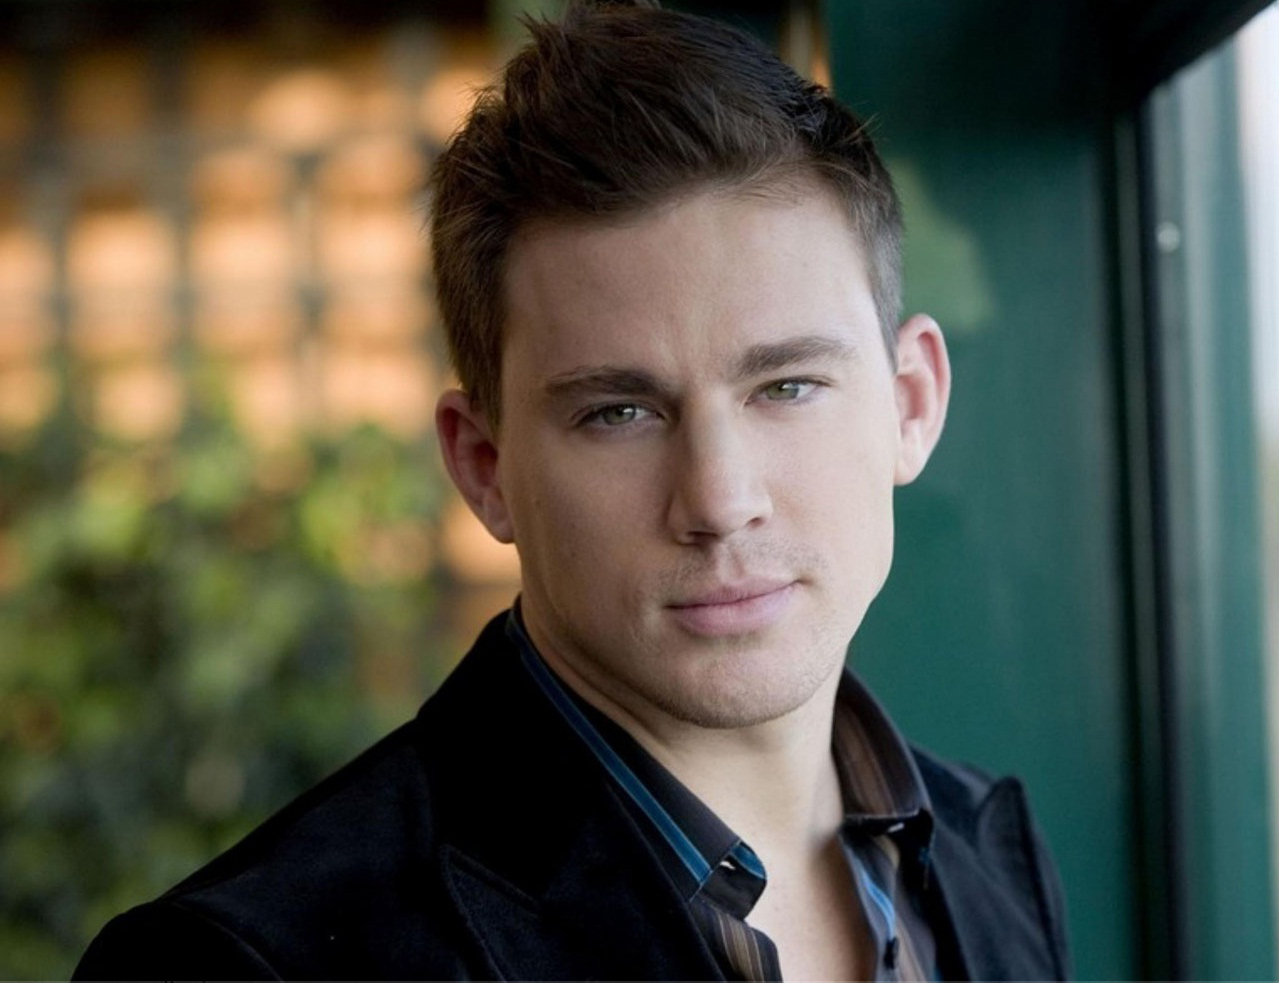 channing matthew tatum hd wallpapers